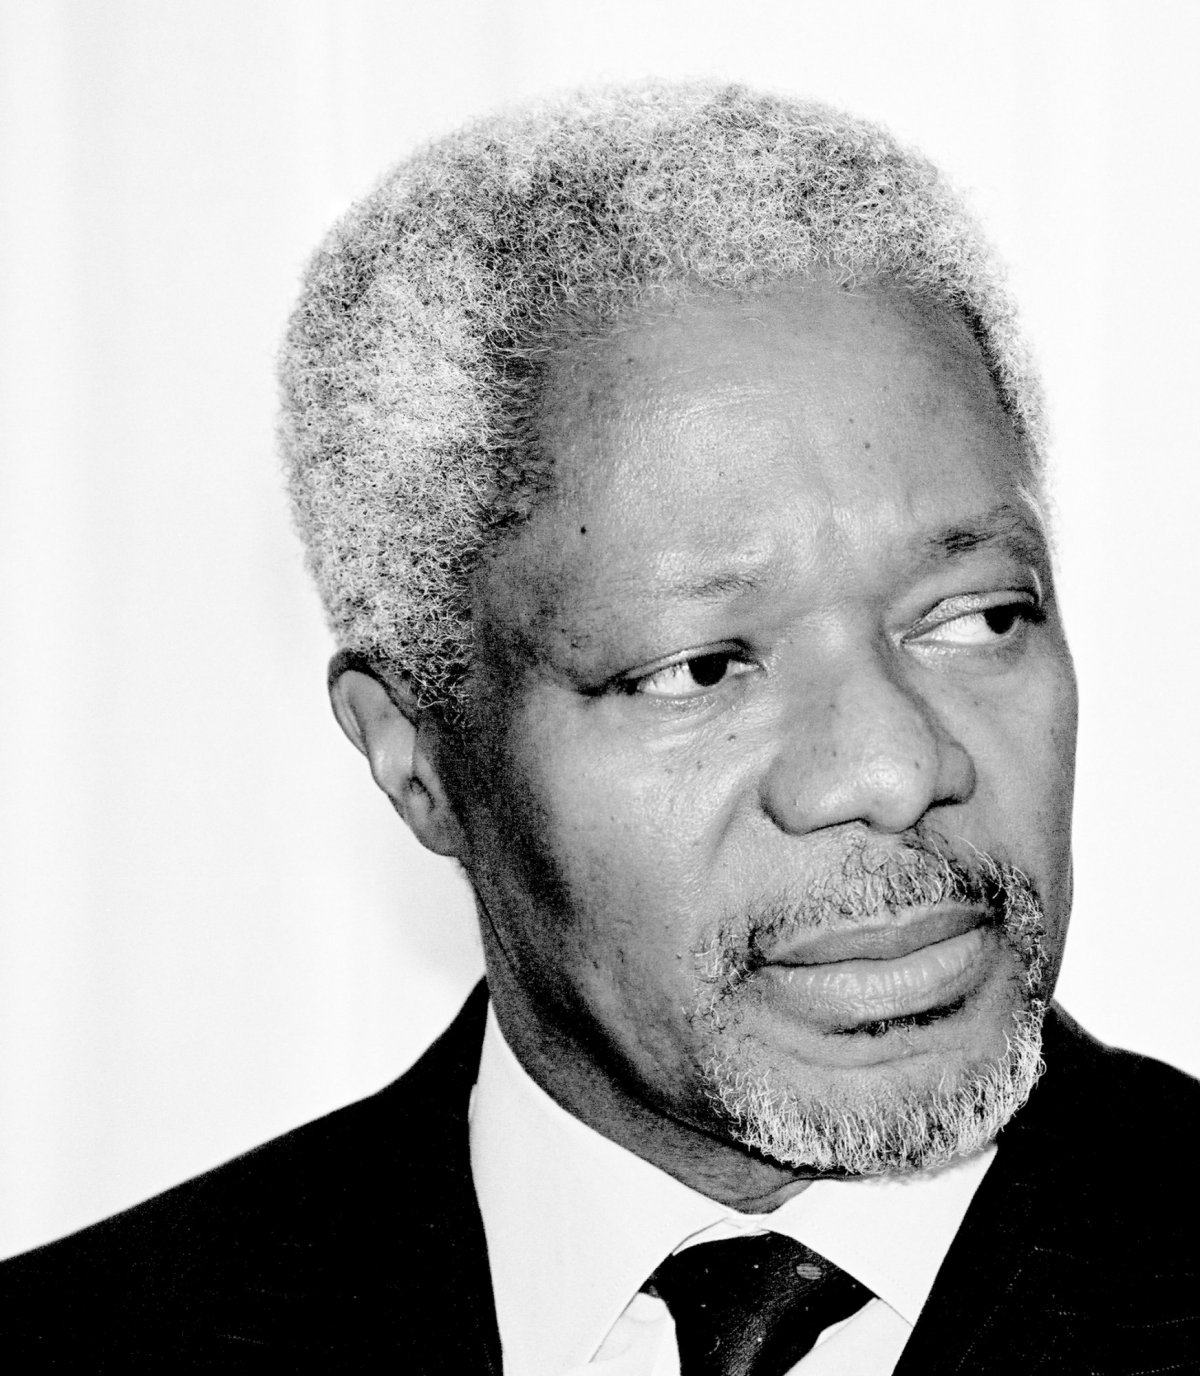 Kofi Annan. Secretary-General of the United Nations between 1997 and 2006